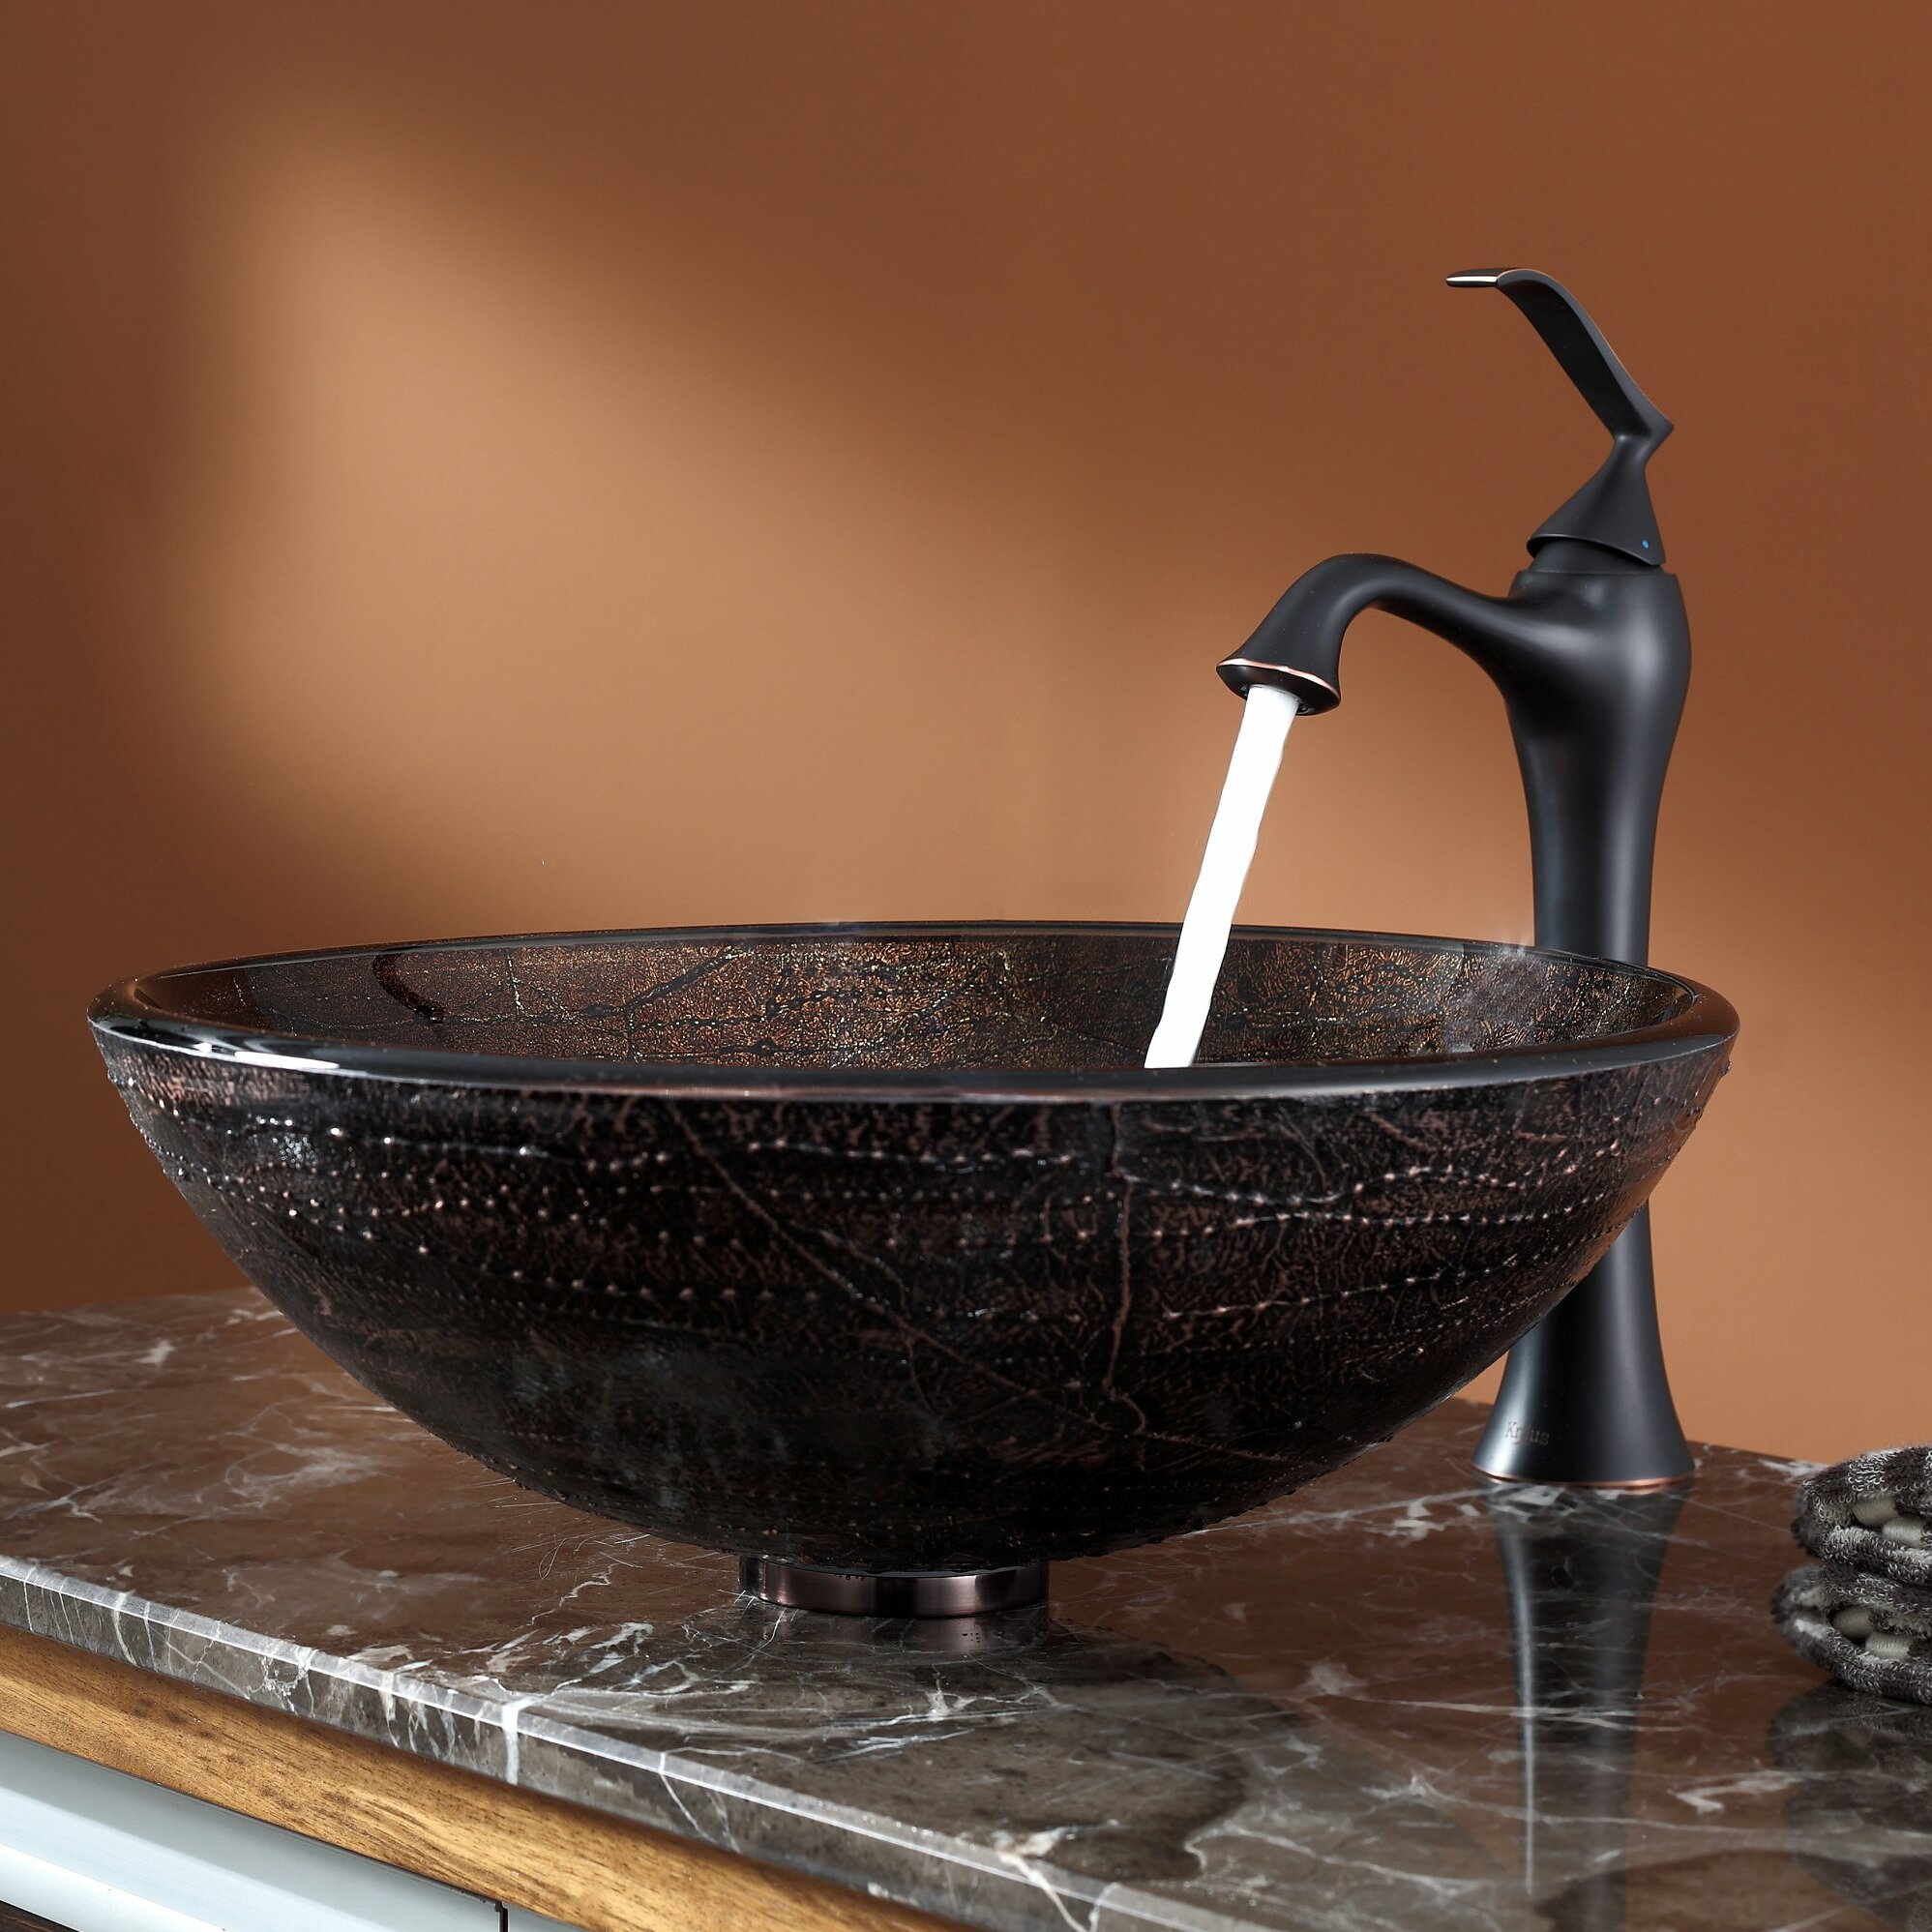 ... Illusion Glass Vessel Sink and Ventus Faucet & Reviews Wayfair